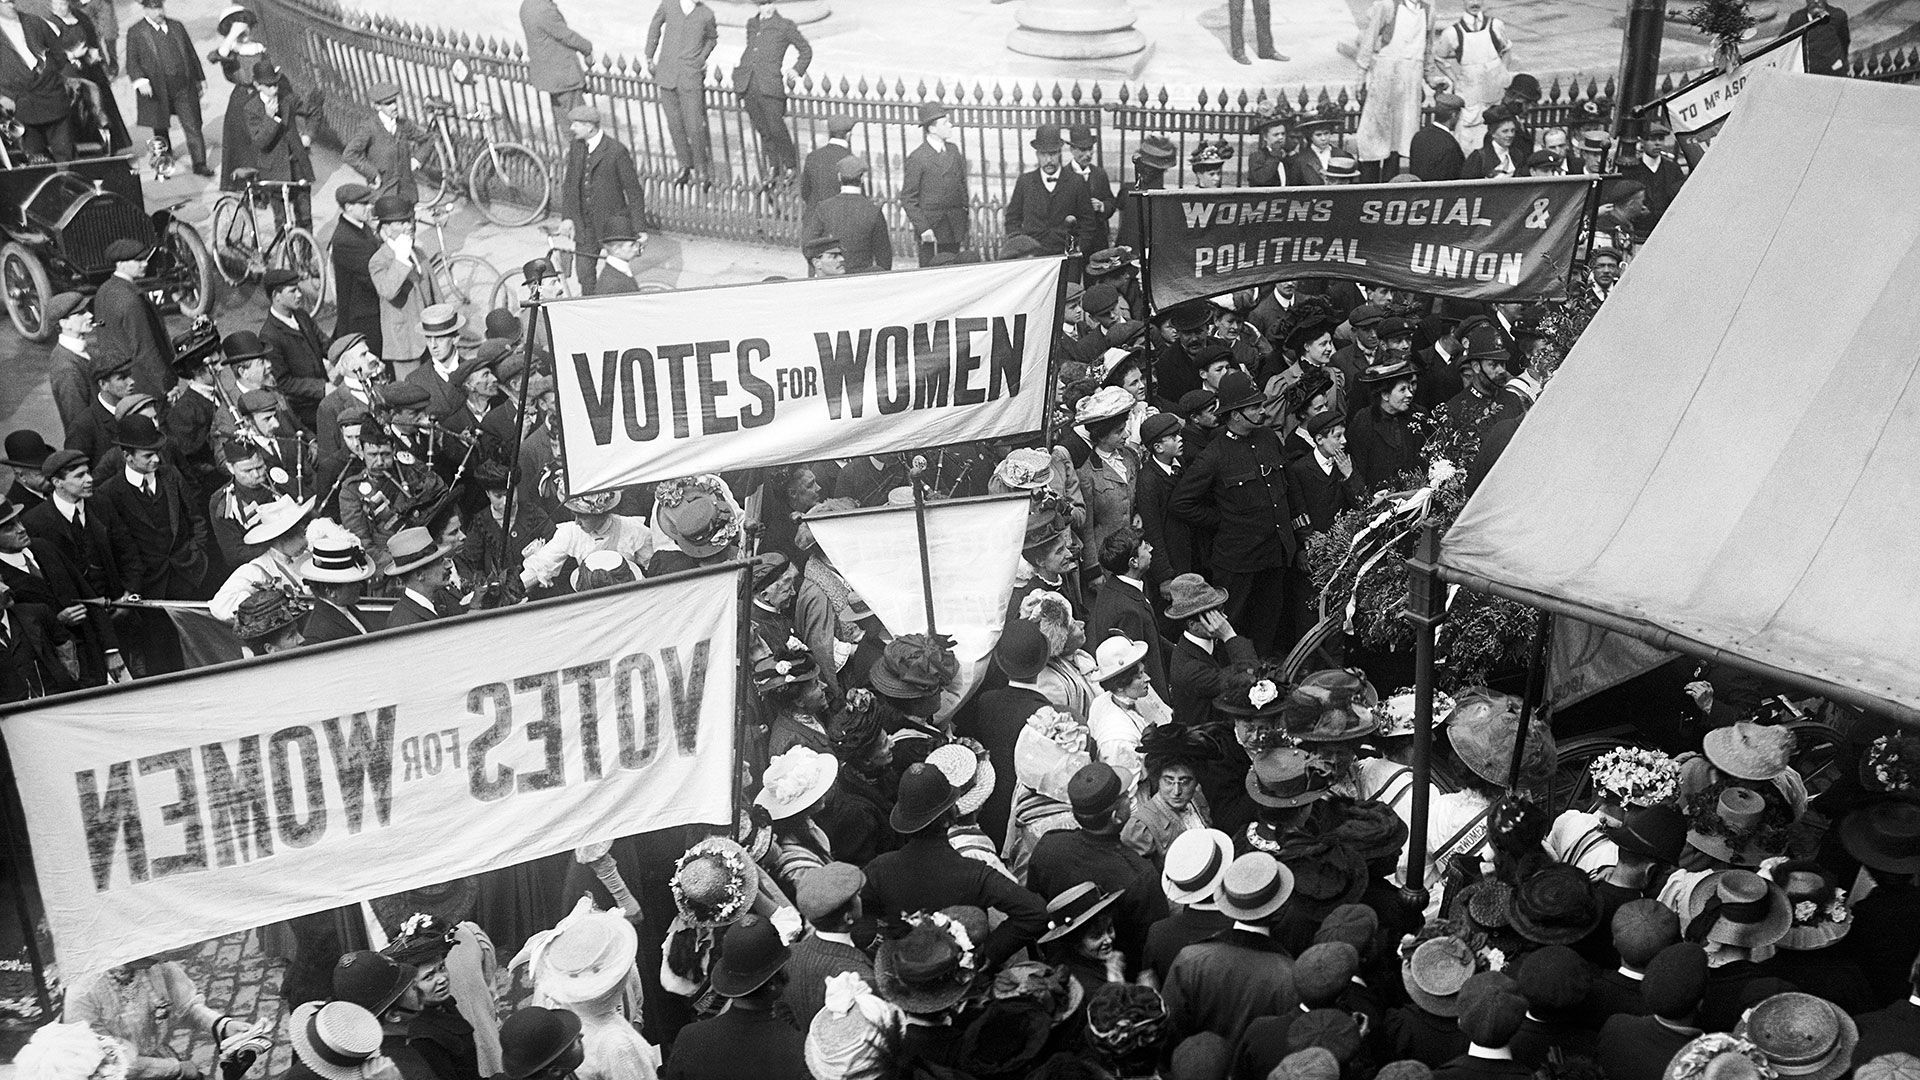 Suffragette Millicent Fawcett To Be First Woman With